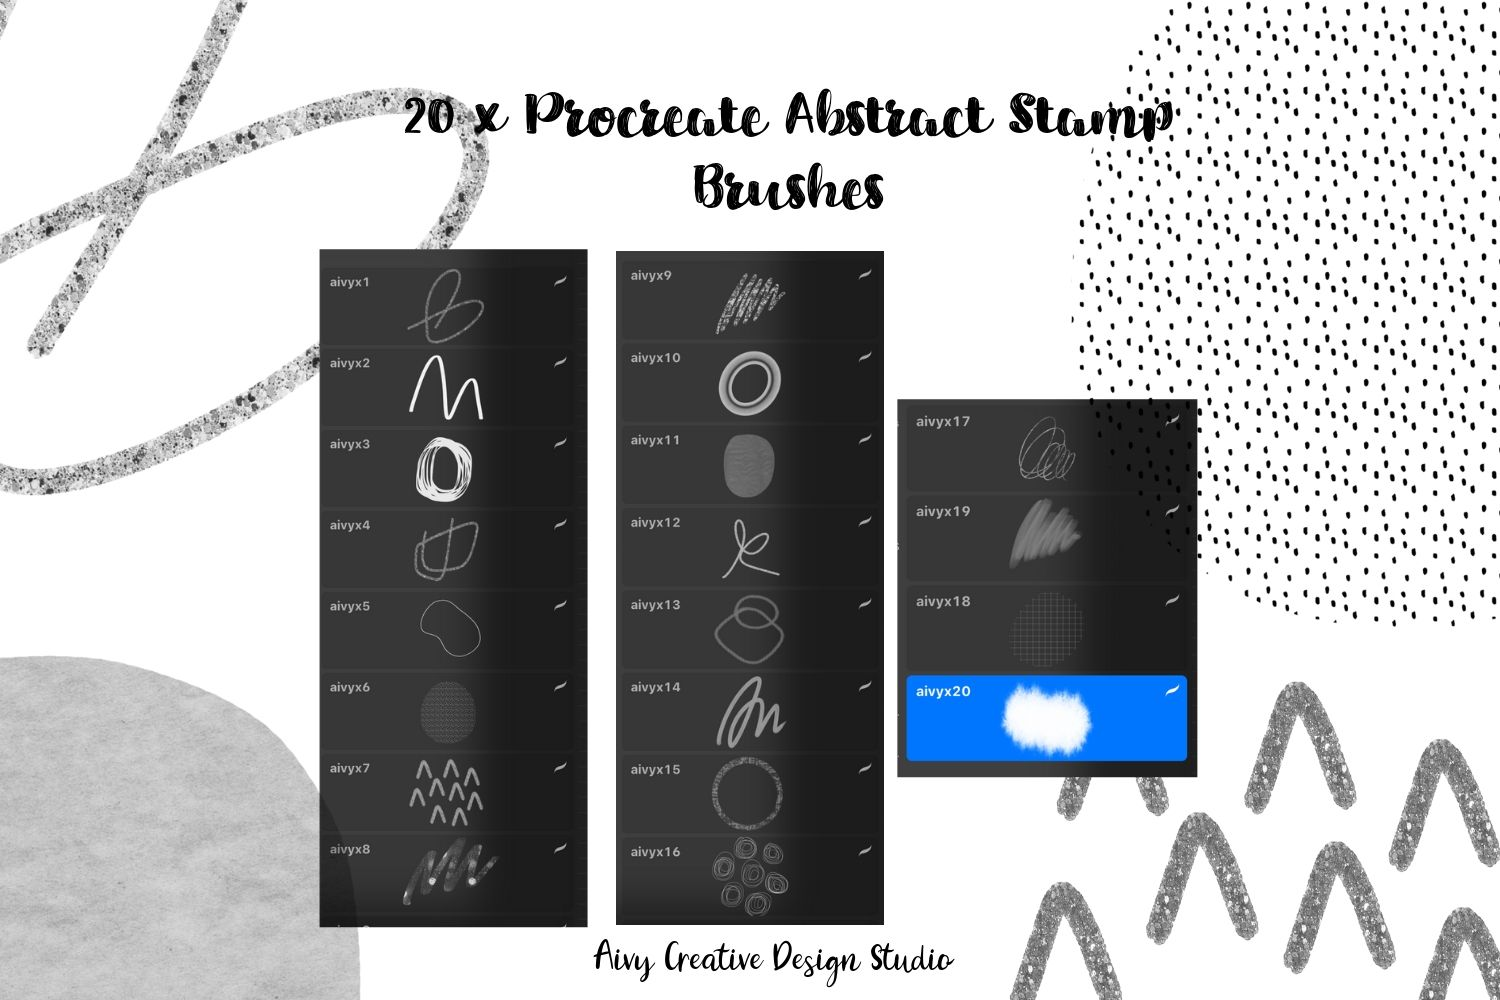 Procreate Abstract Stamp Brushes Set